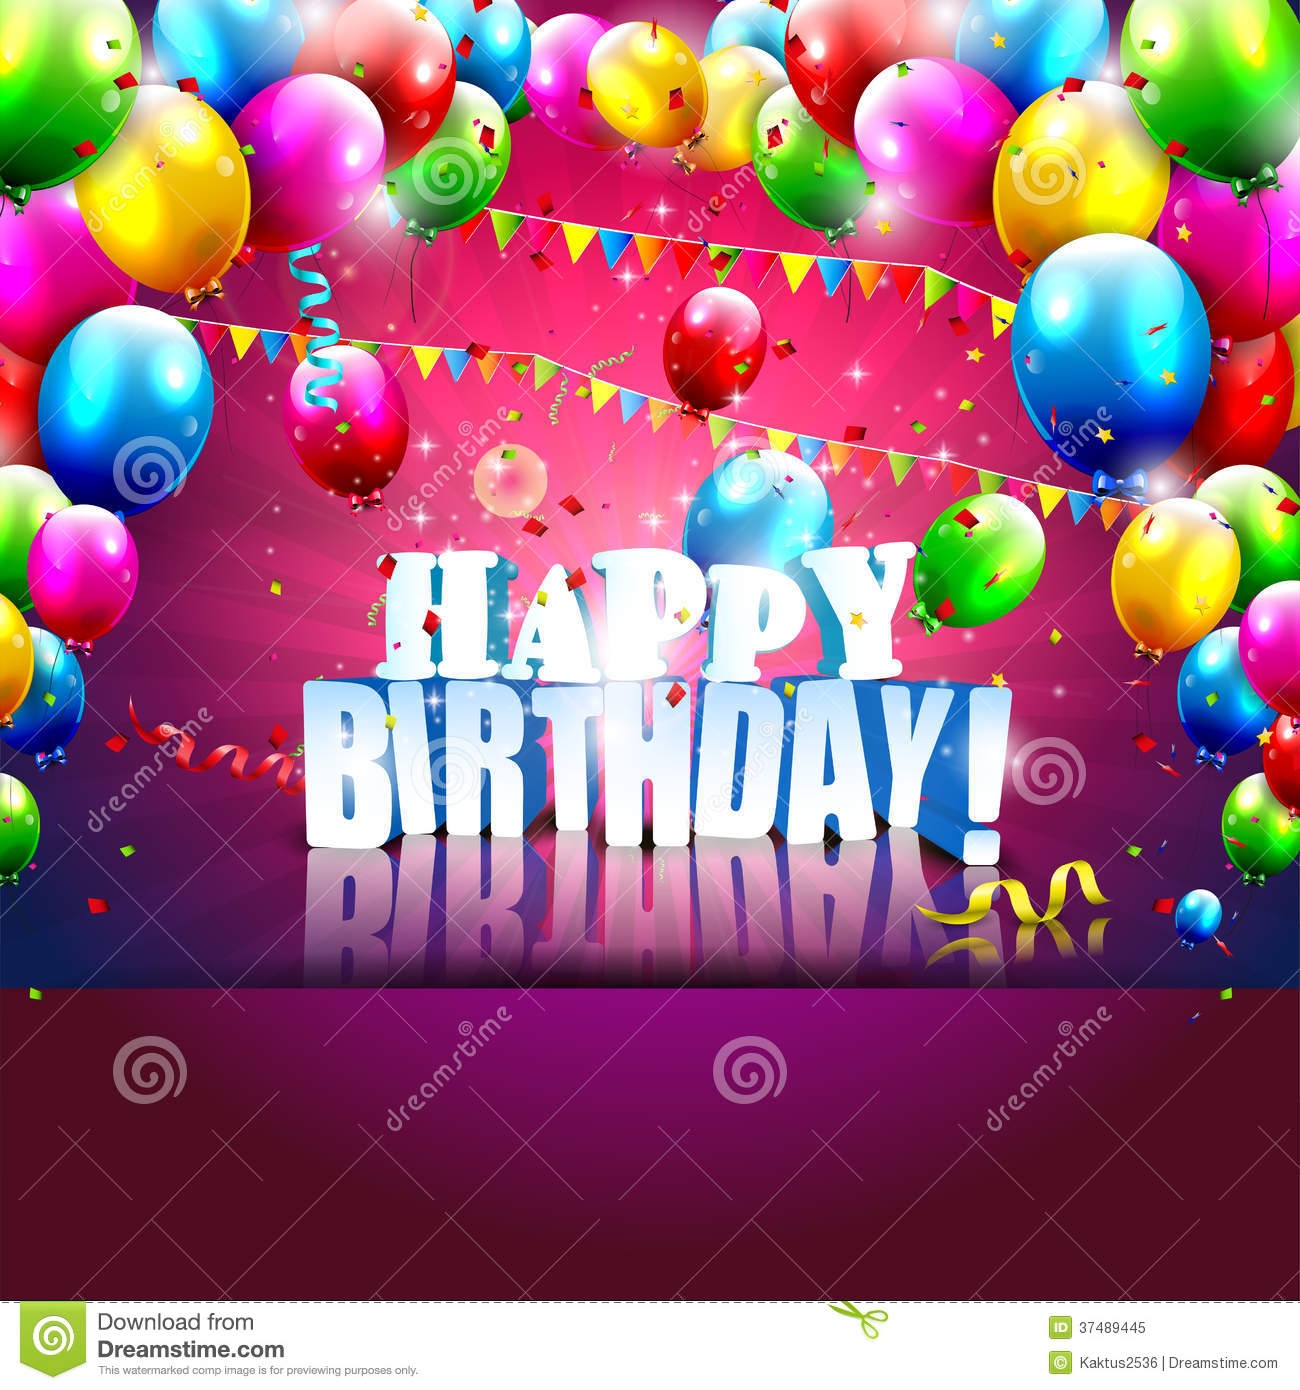 birthday poster images ; birthday-poster-realistic-colorful-balloons-d-text-vector-background-copyspace-37489445